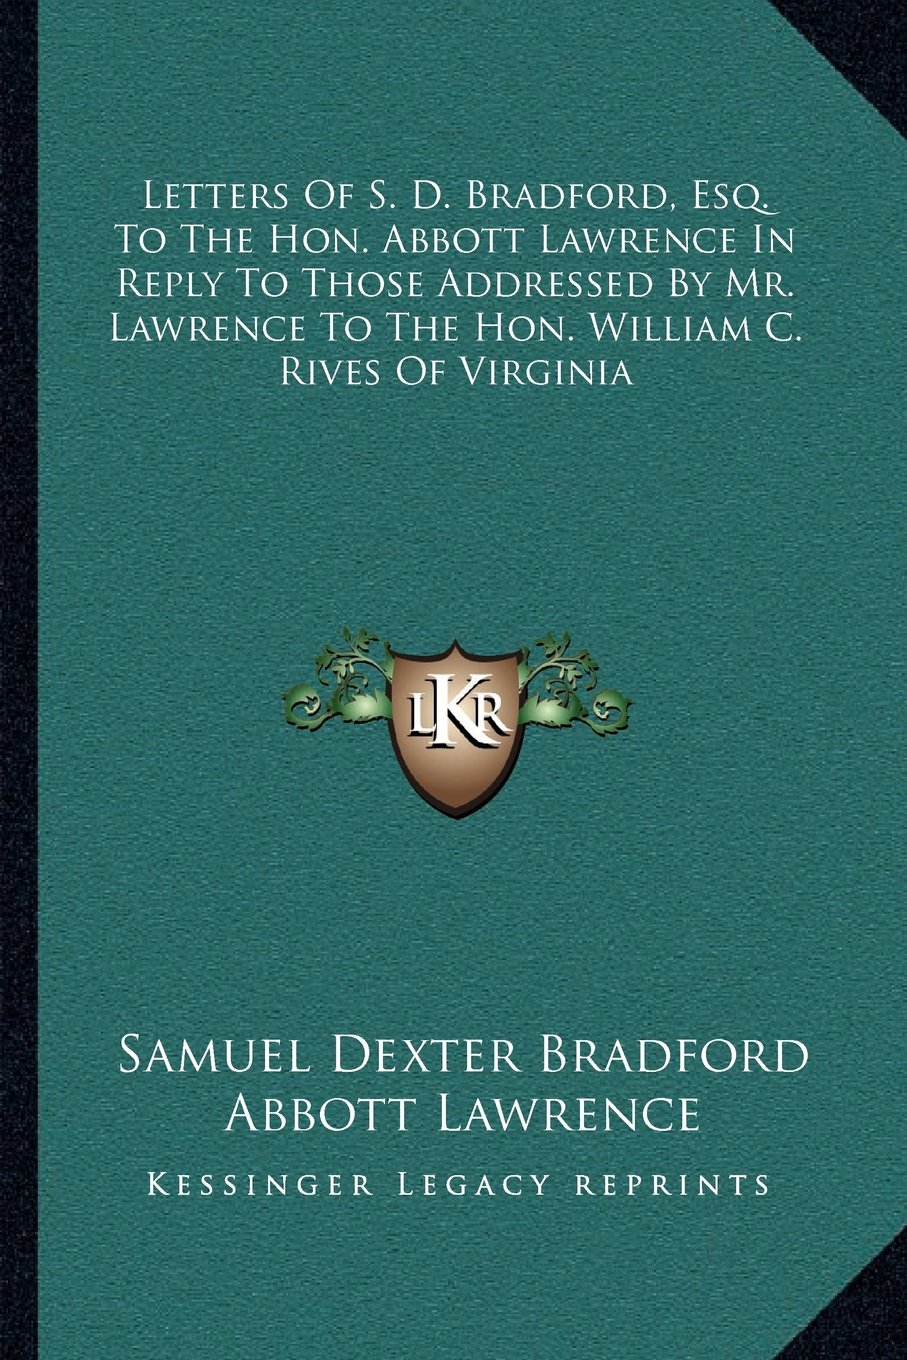 Read Online Letters Of S. D. Bradford, Esq. To The Hon. Abbott Lawrence In Reply To Those Addressed By Mr. Lawrence To The Hon. William C. Rives Of Virginia pdf epub